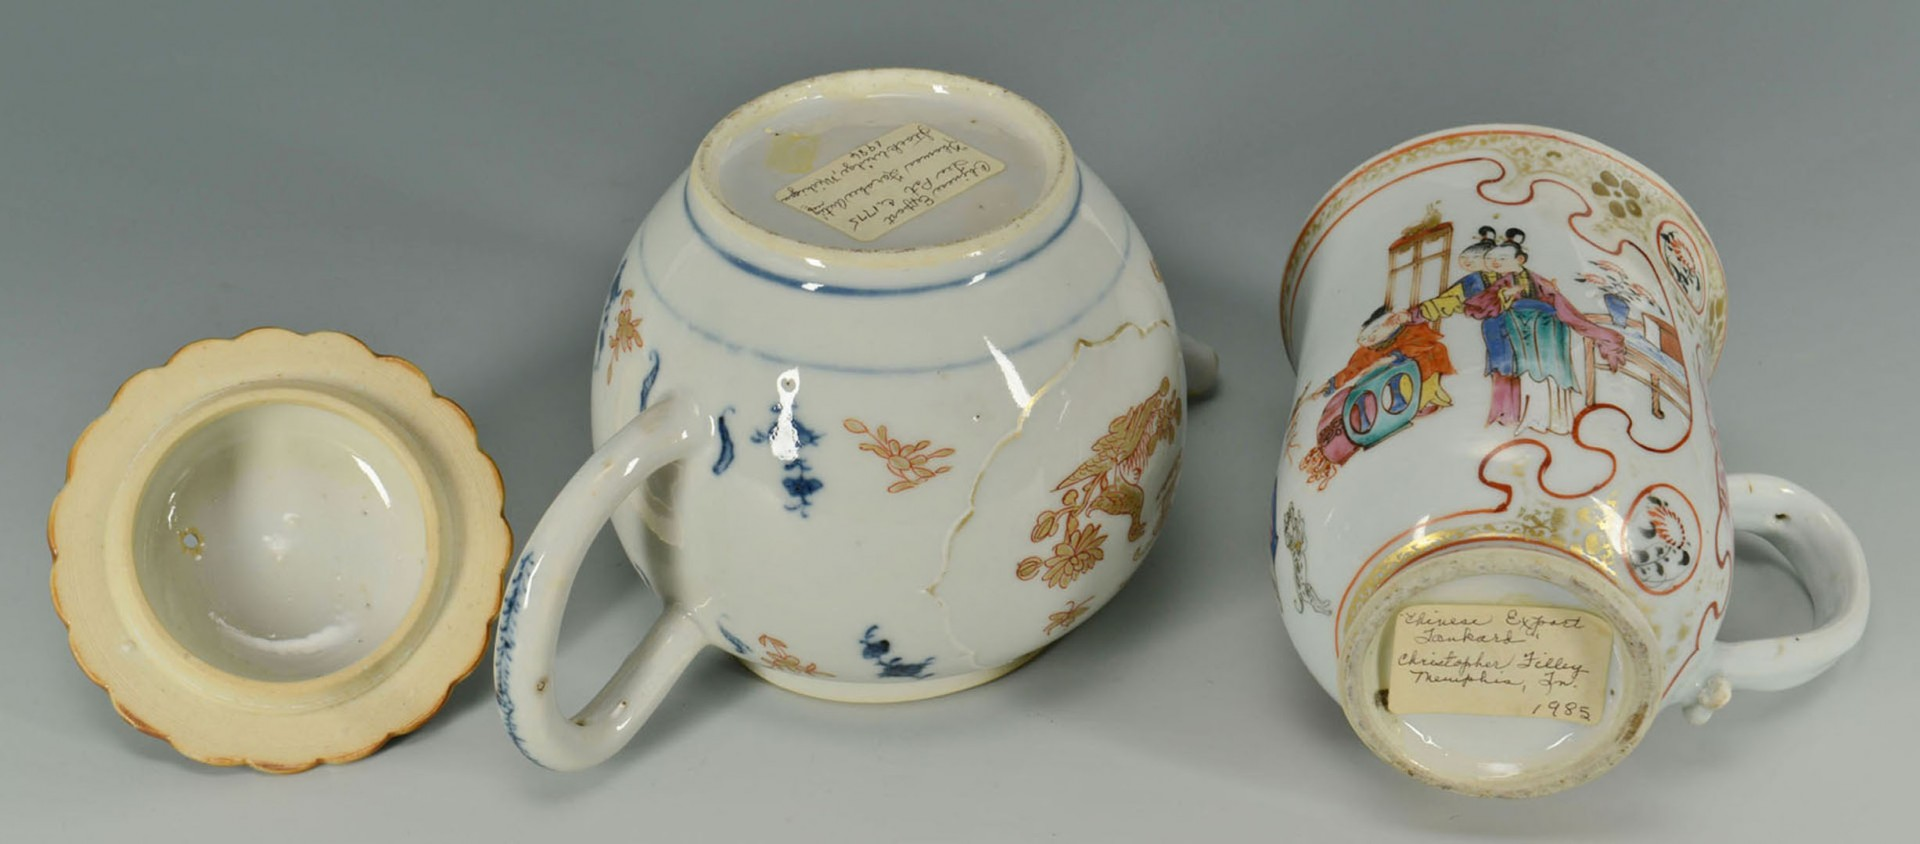 Lot 2872277: Grouping of 3 Chinese Export Porcelain Items